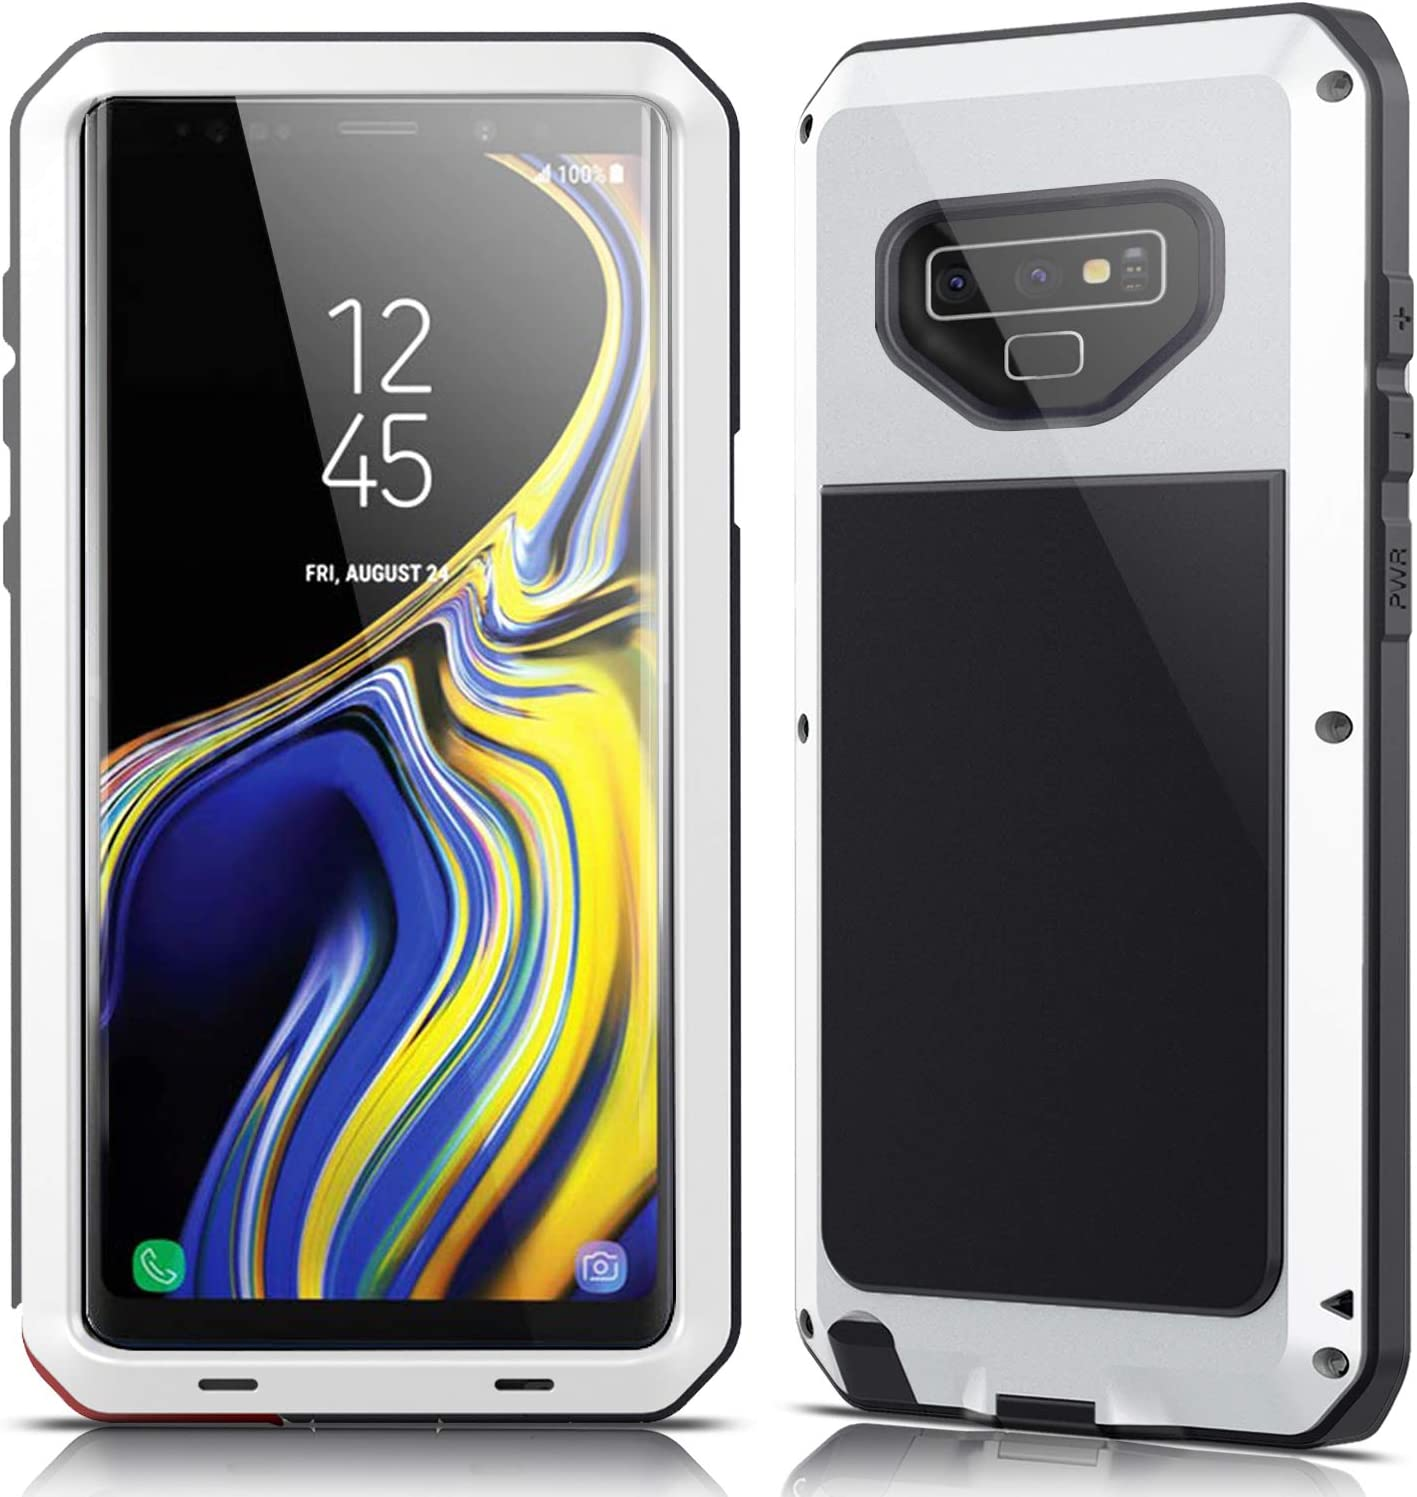 Galaxy Note 9 Case,Lilycase Armor Heavy Duty Hybrid Aluminum Metal Shockproof Military Shockproof Hard Cover for Samsung Galaxy Galaxy Note 9 Newest - White